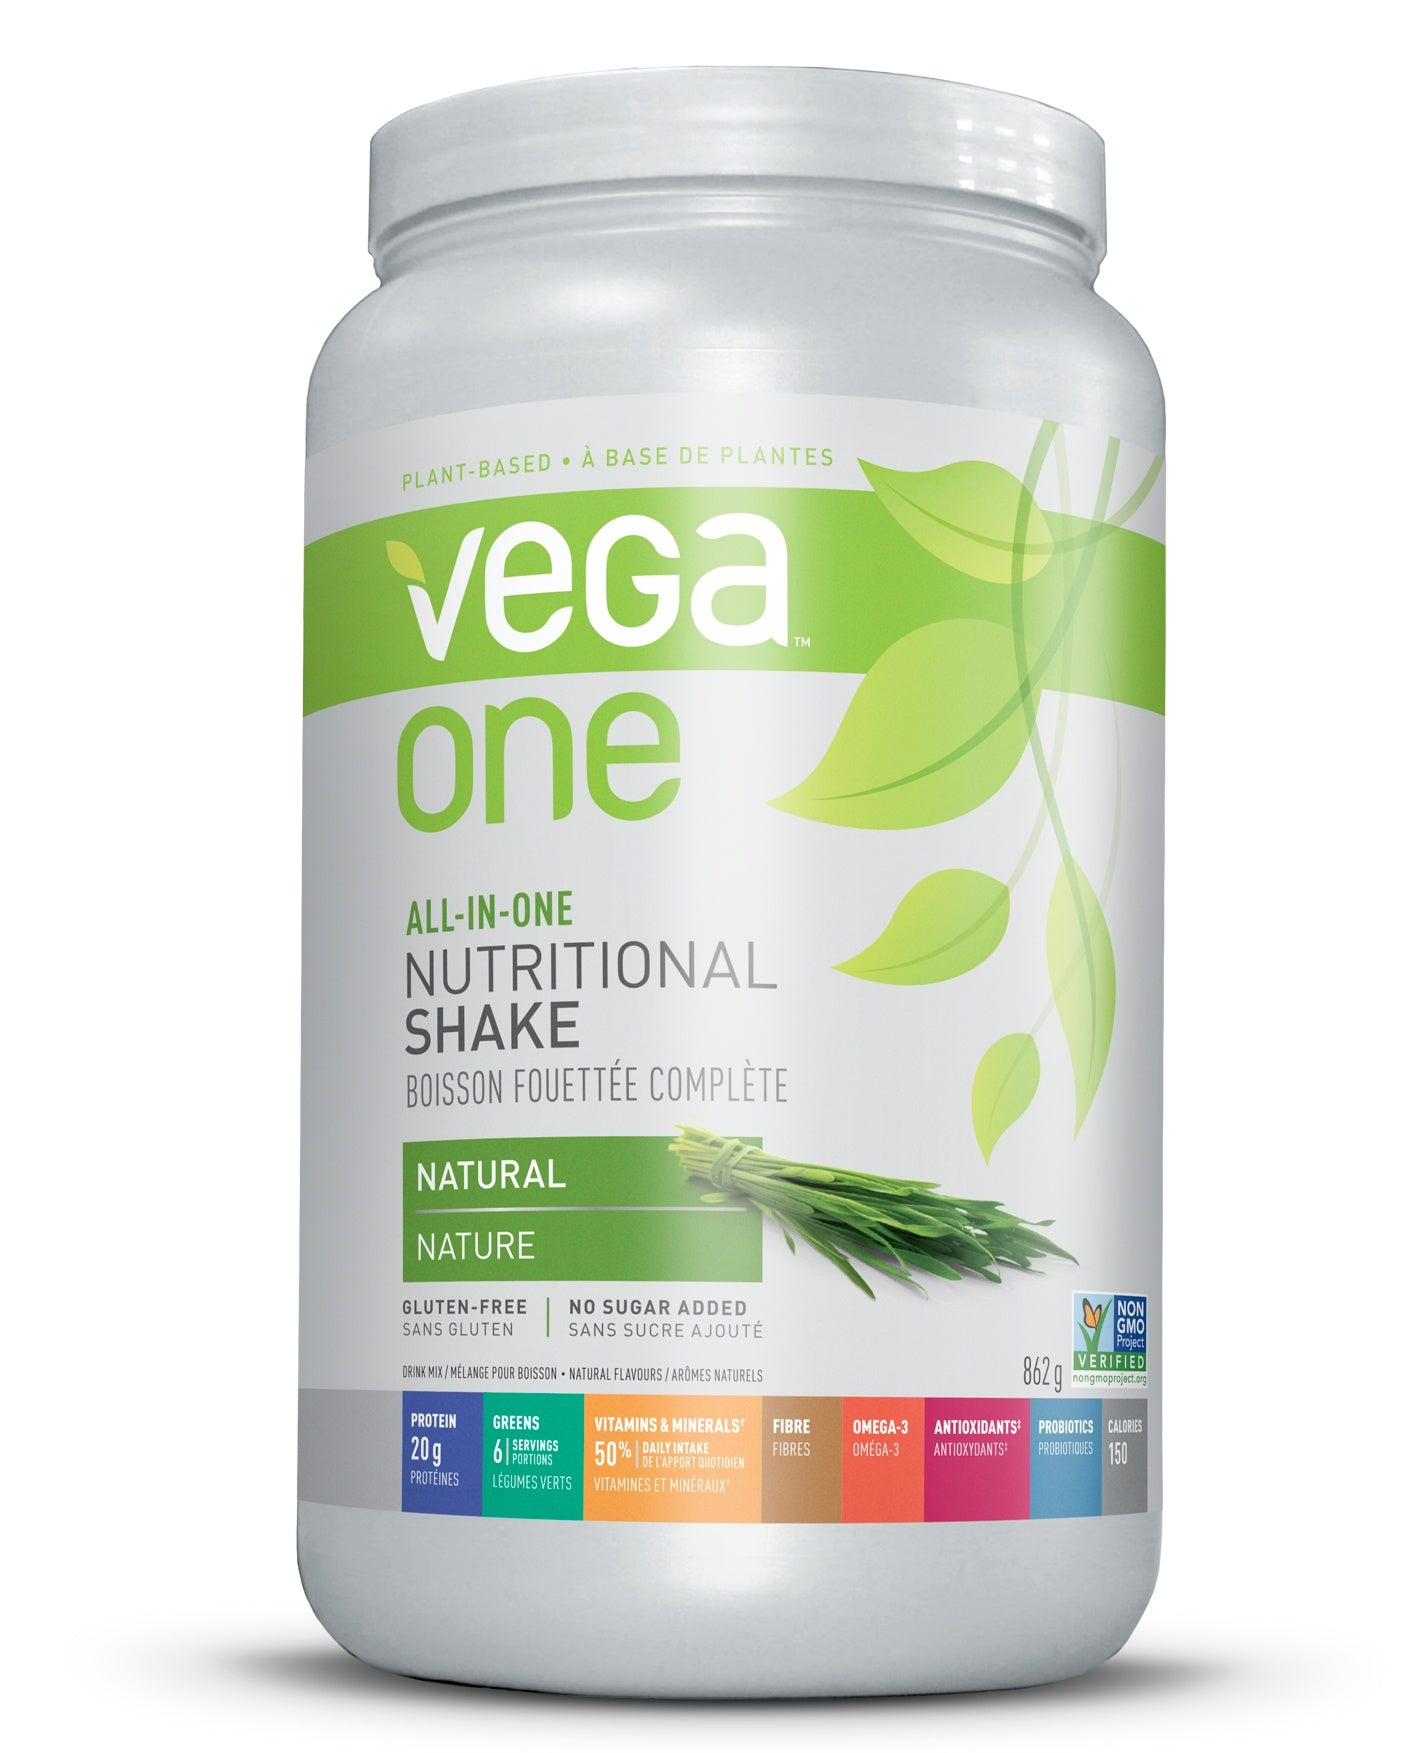 Supplements & Vitamins - Vega - Natural Nutritional Shake, 874g